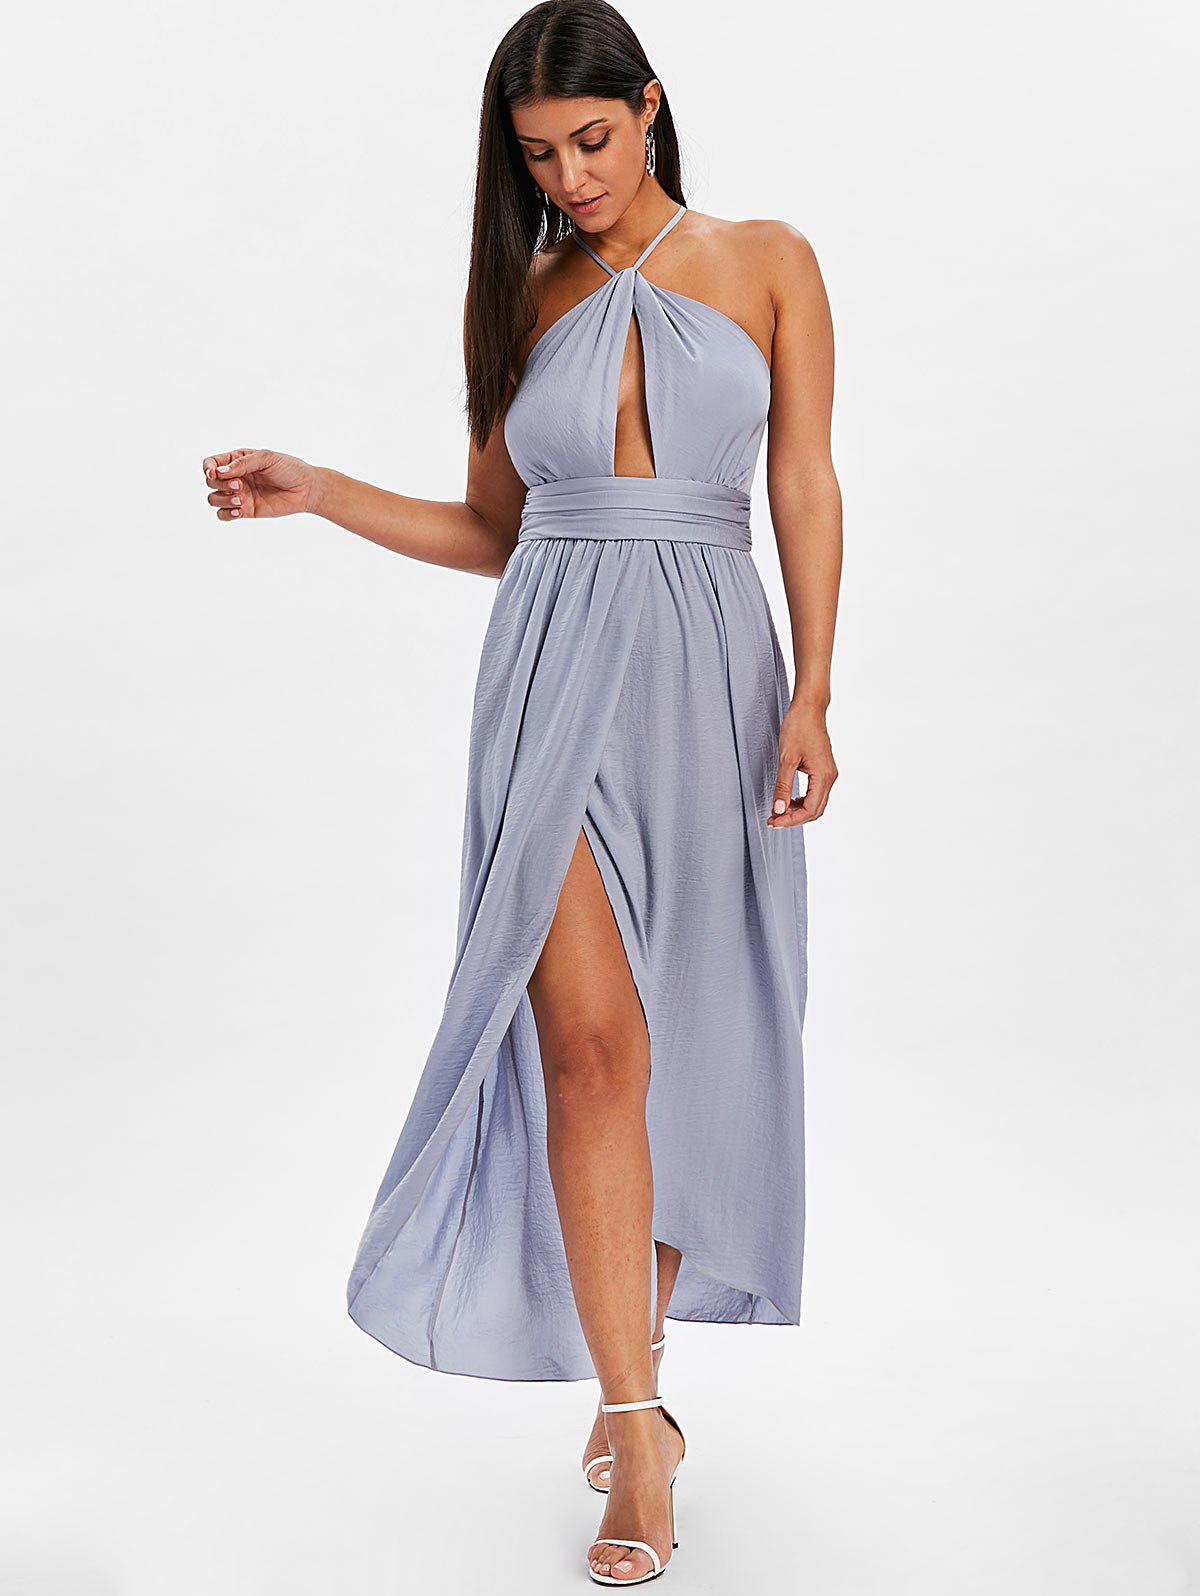 New Cut Out Strappy Backless Dress